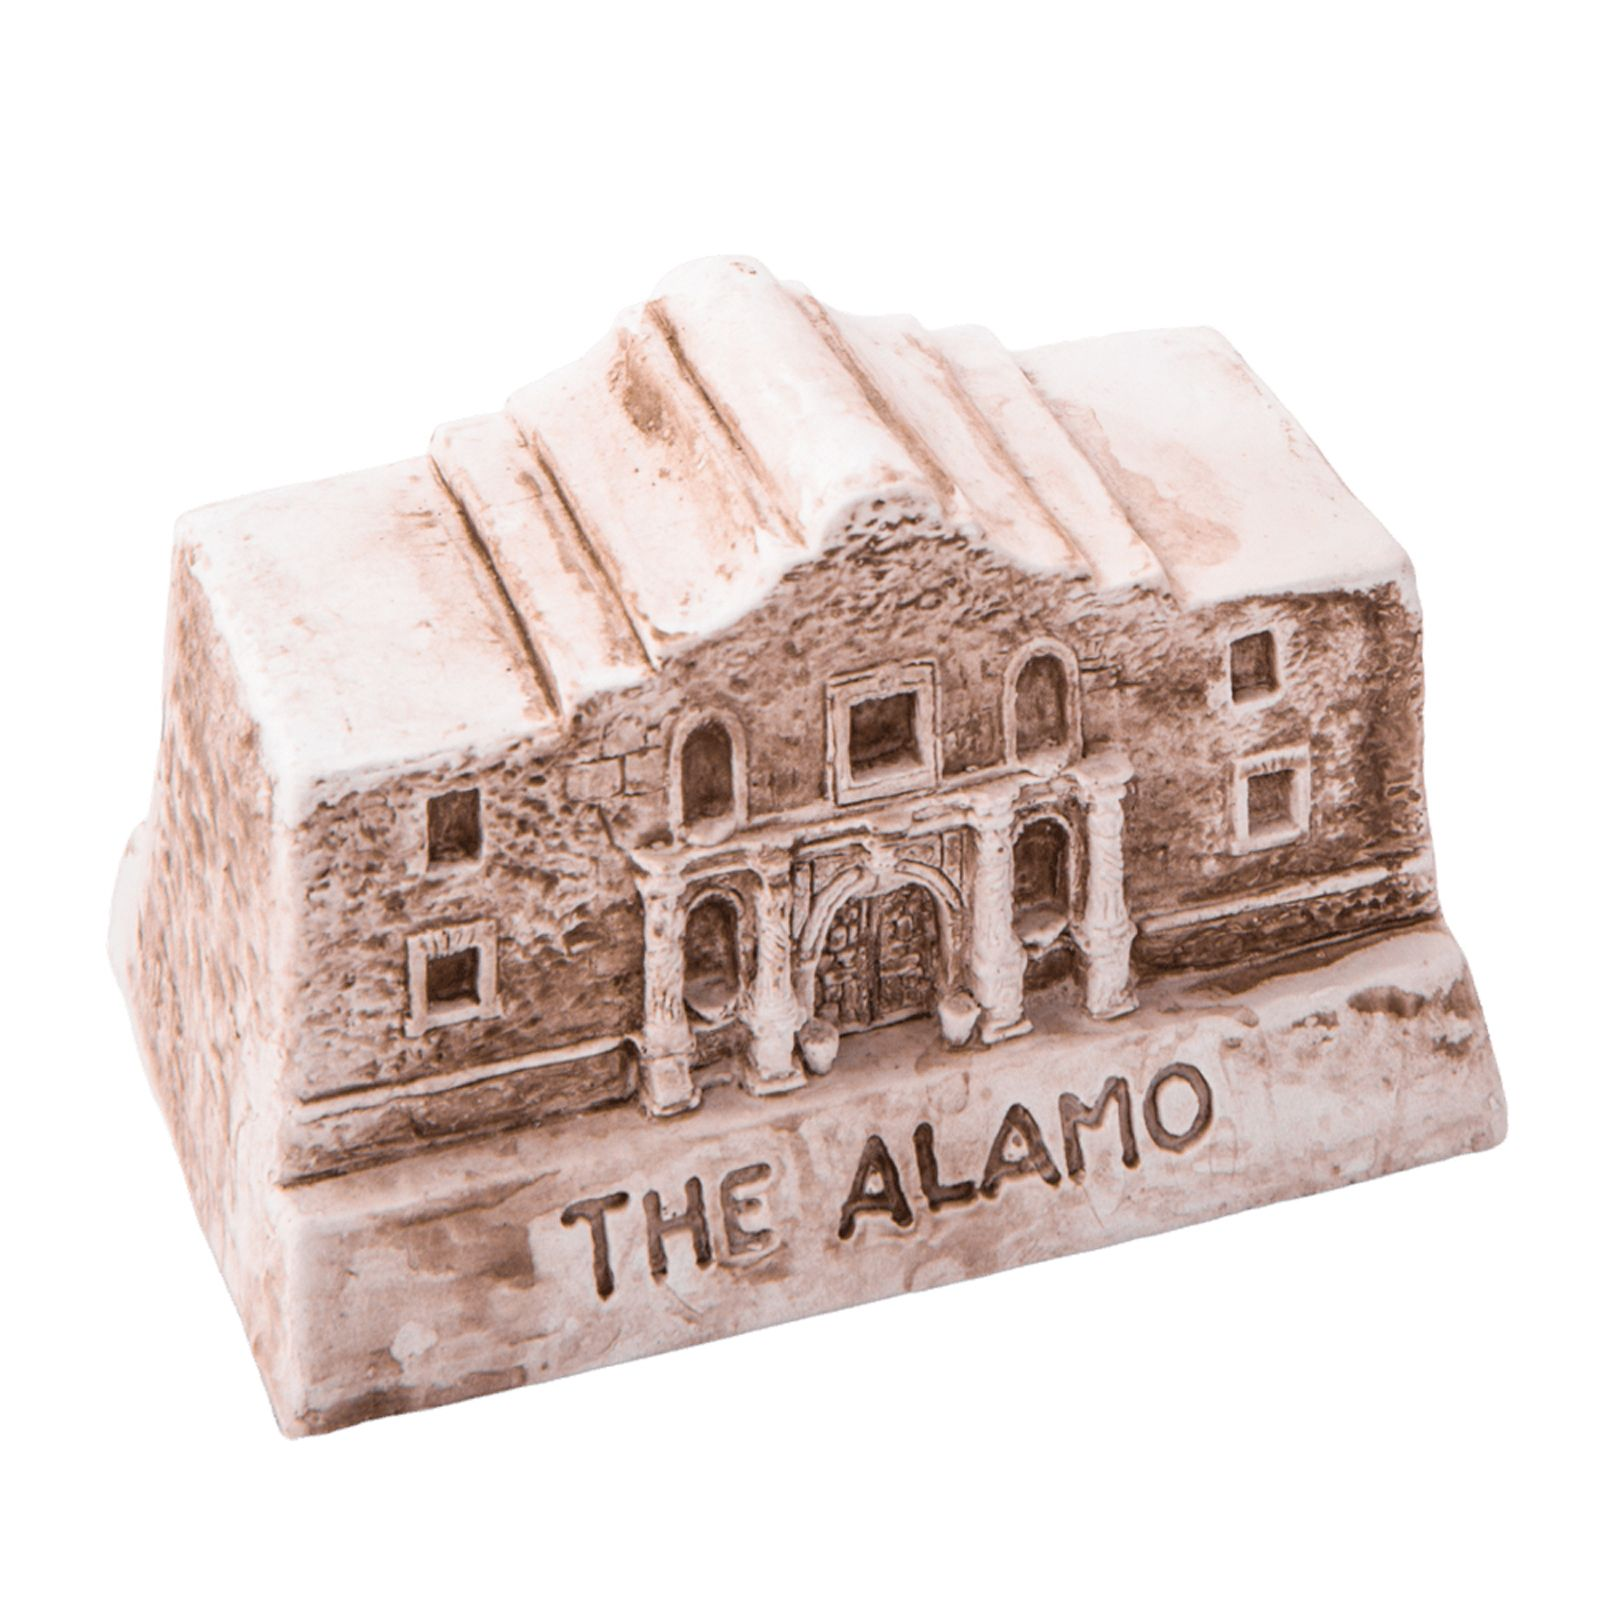 Alamo Clay Replica Paperweight